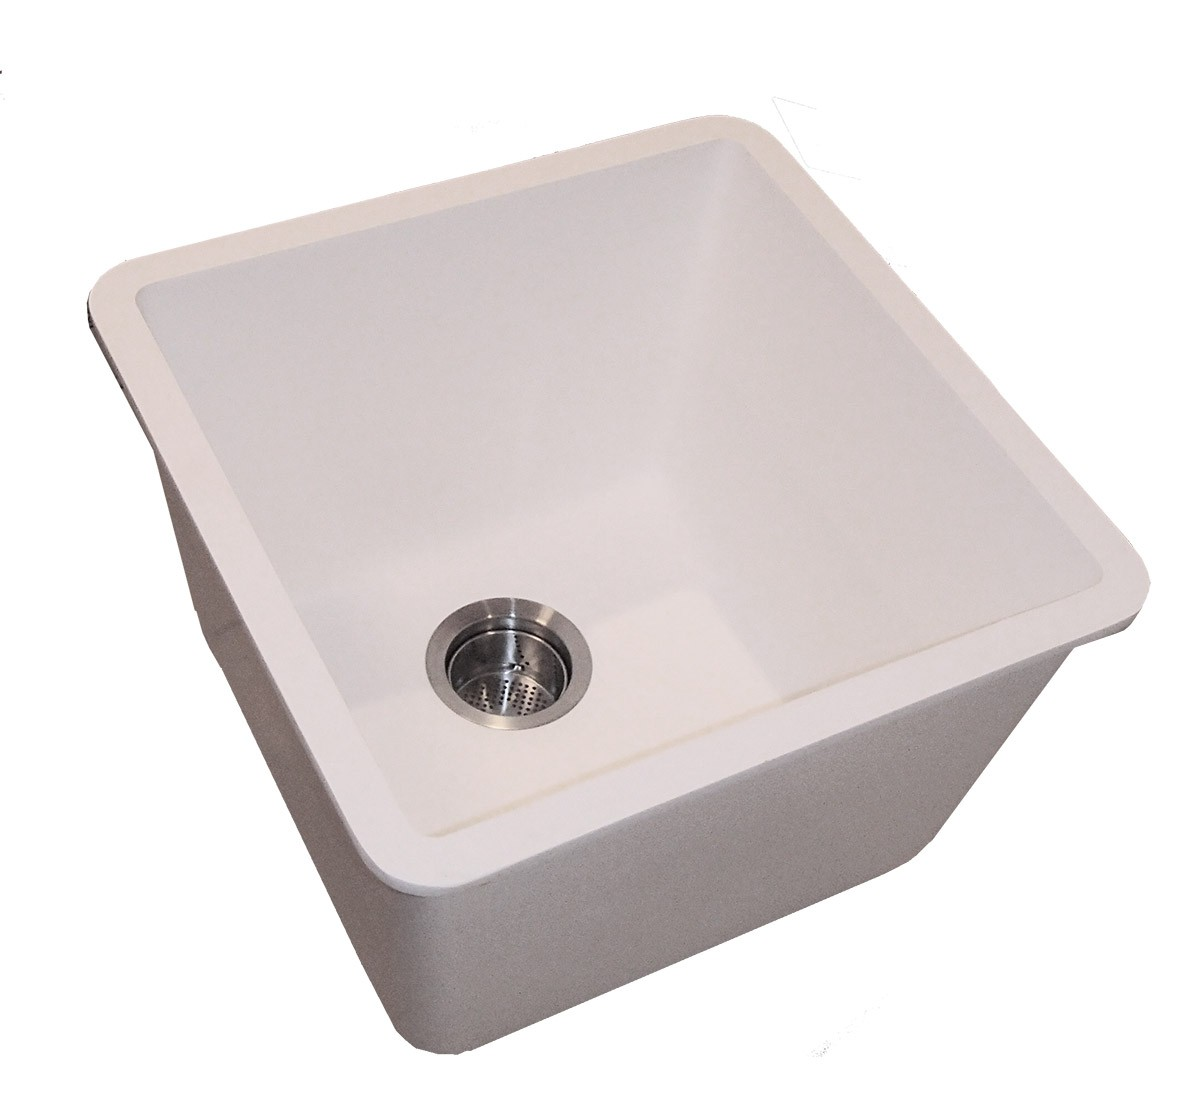 Deep utility kitchen sink bisque gemstone part 1616 es bq - Bq kitchen sinks ...